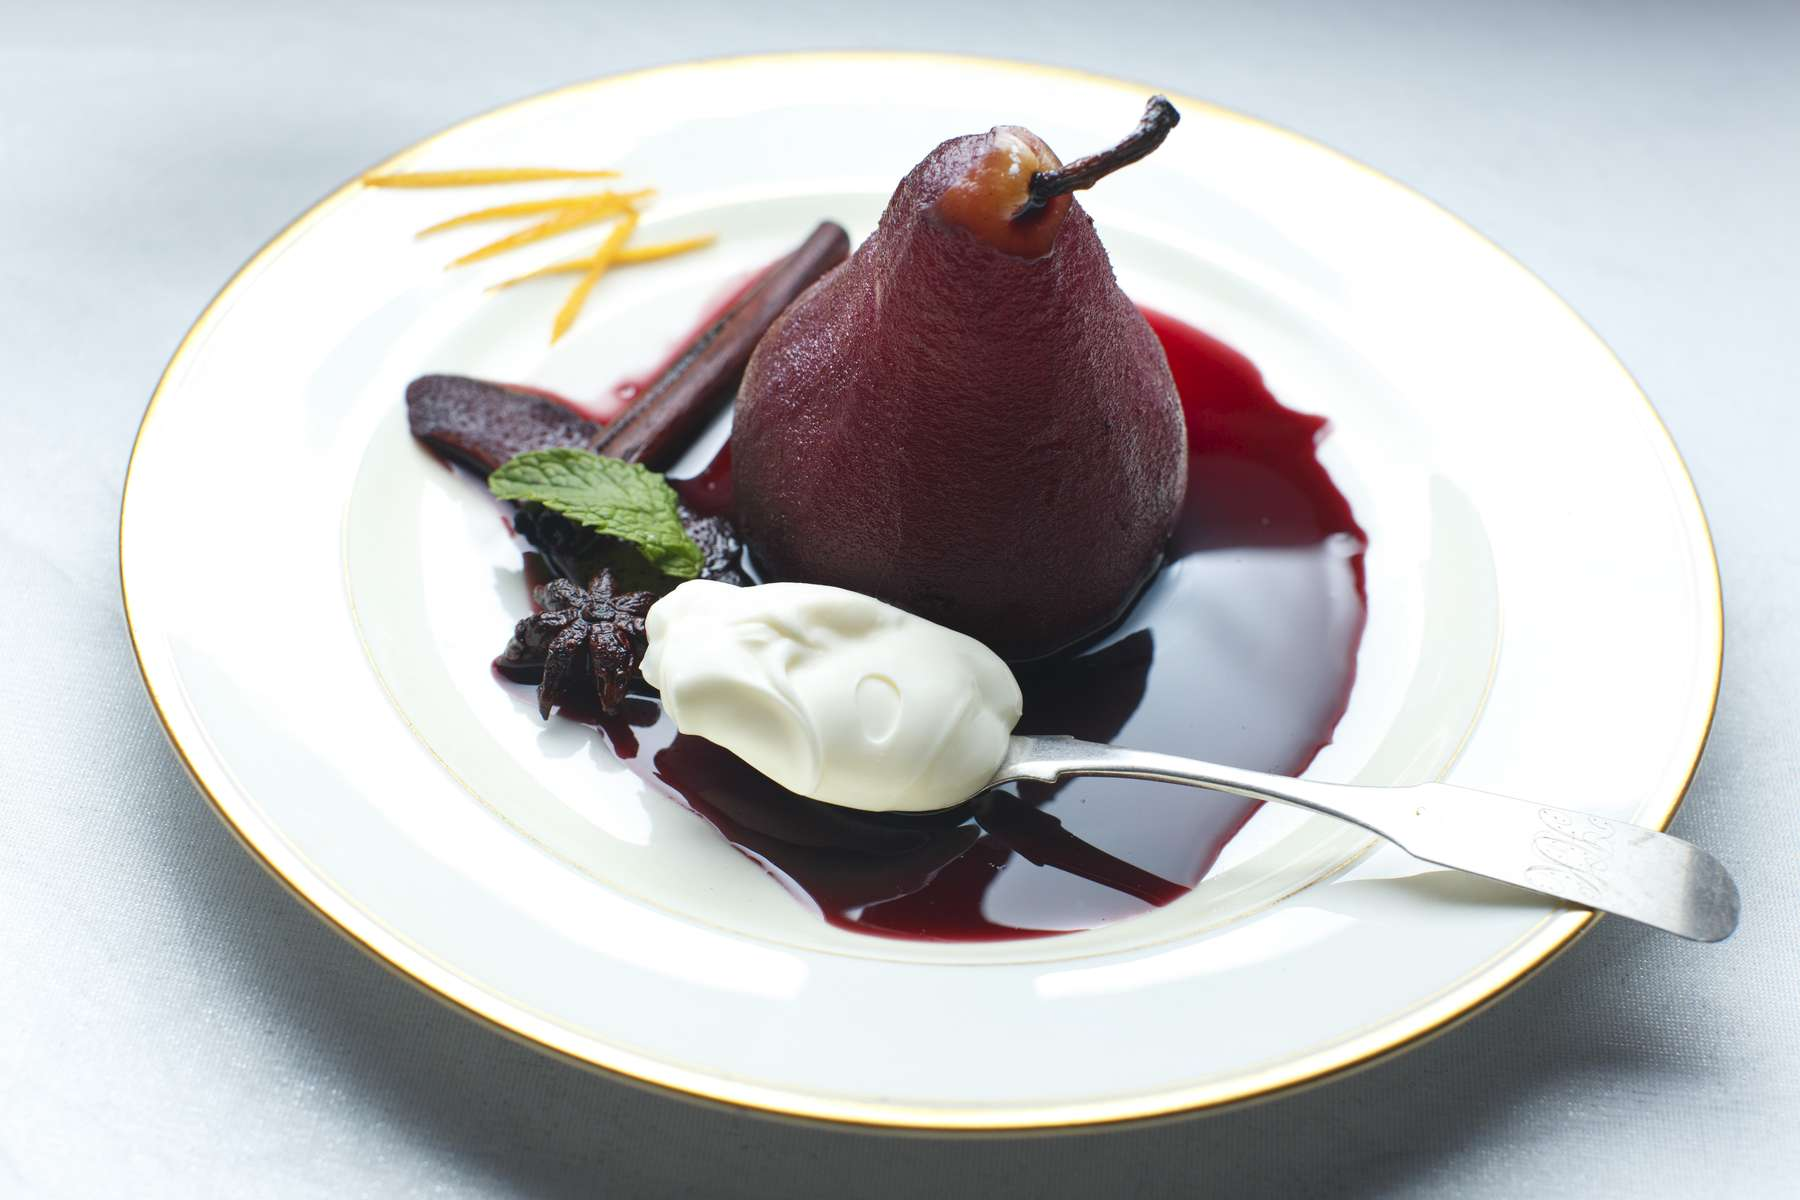 12/3/2015 - Sudbury, MA - This is pears poached in red wine with orange and star anise by chef Gordon Hamersley. Topic: 09hamersley. Story by Gordon Hamersley/Globe Correspondent. Photo by Dina Rudick/Globe Staff